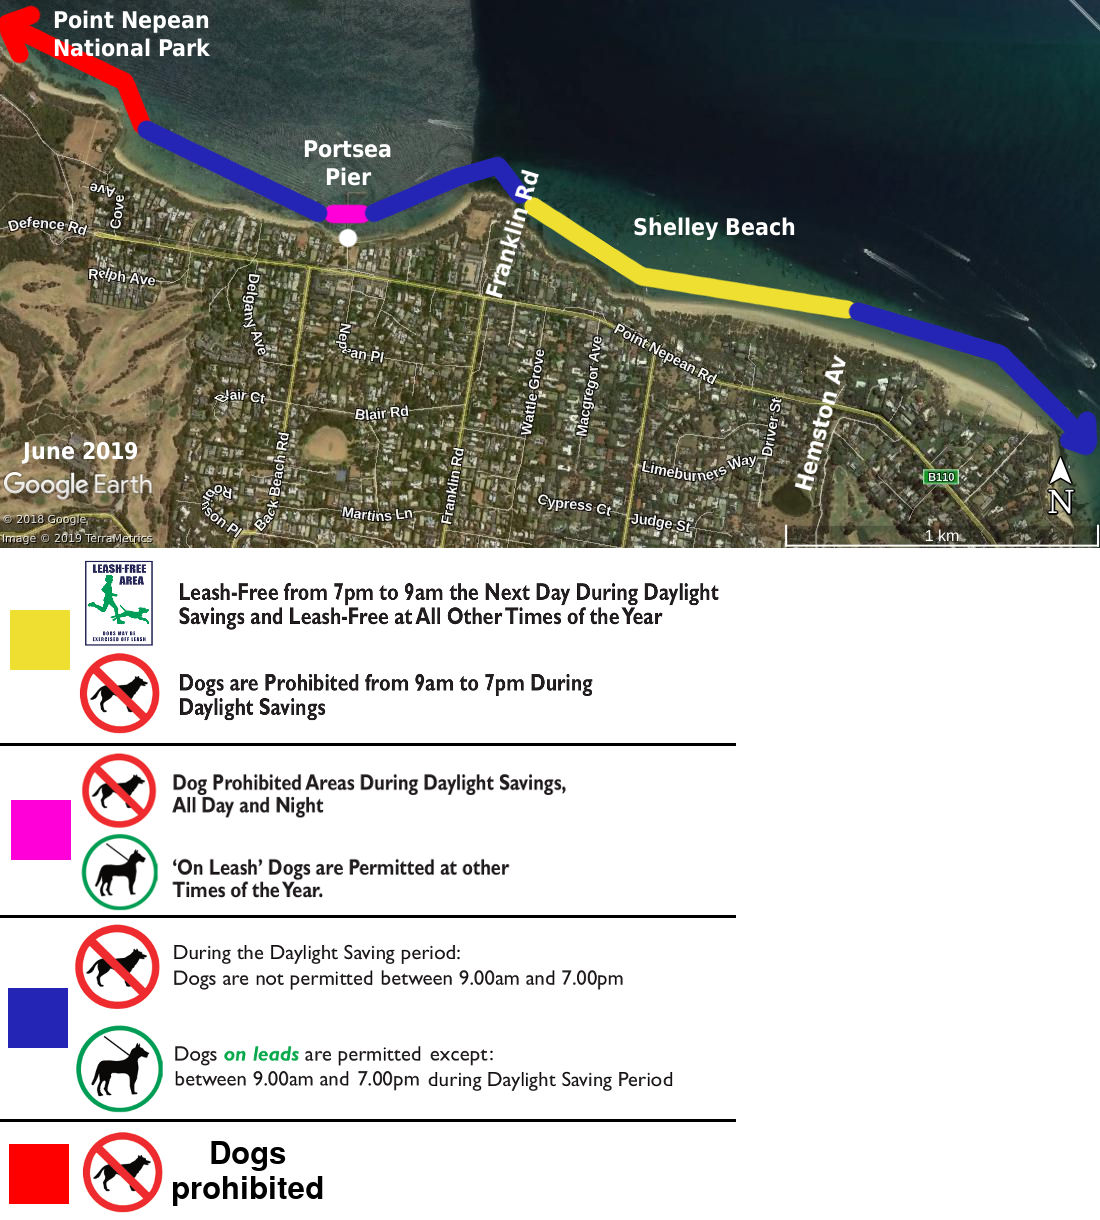 Portsea dog beach map